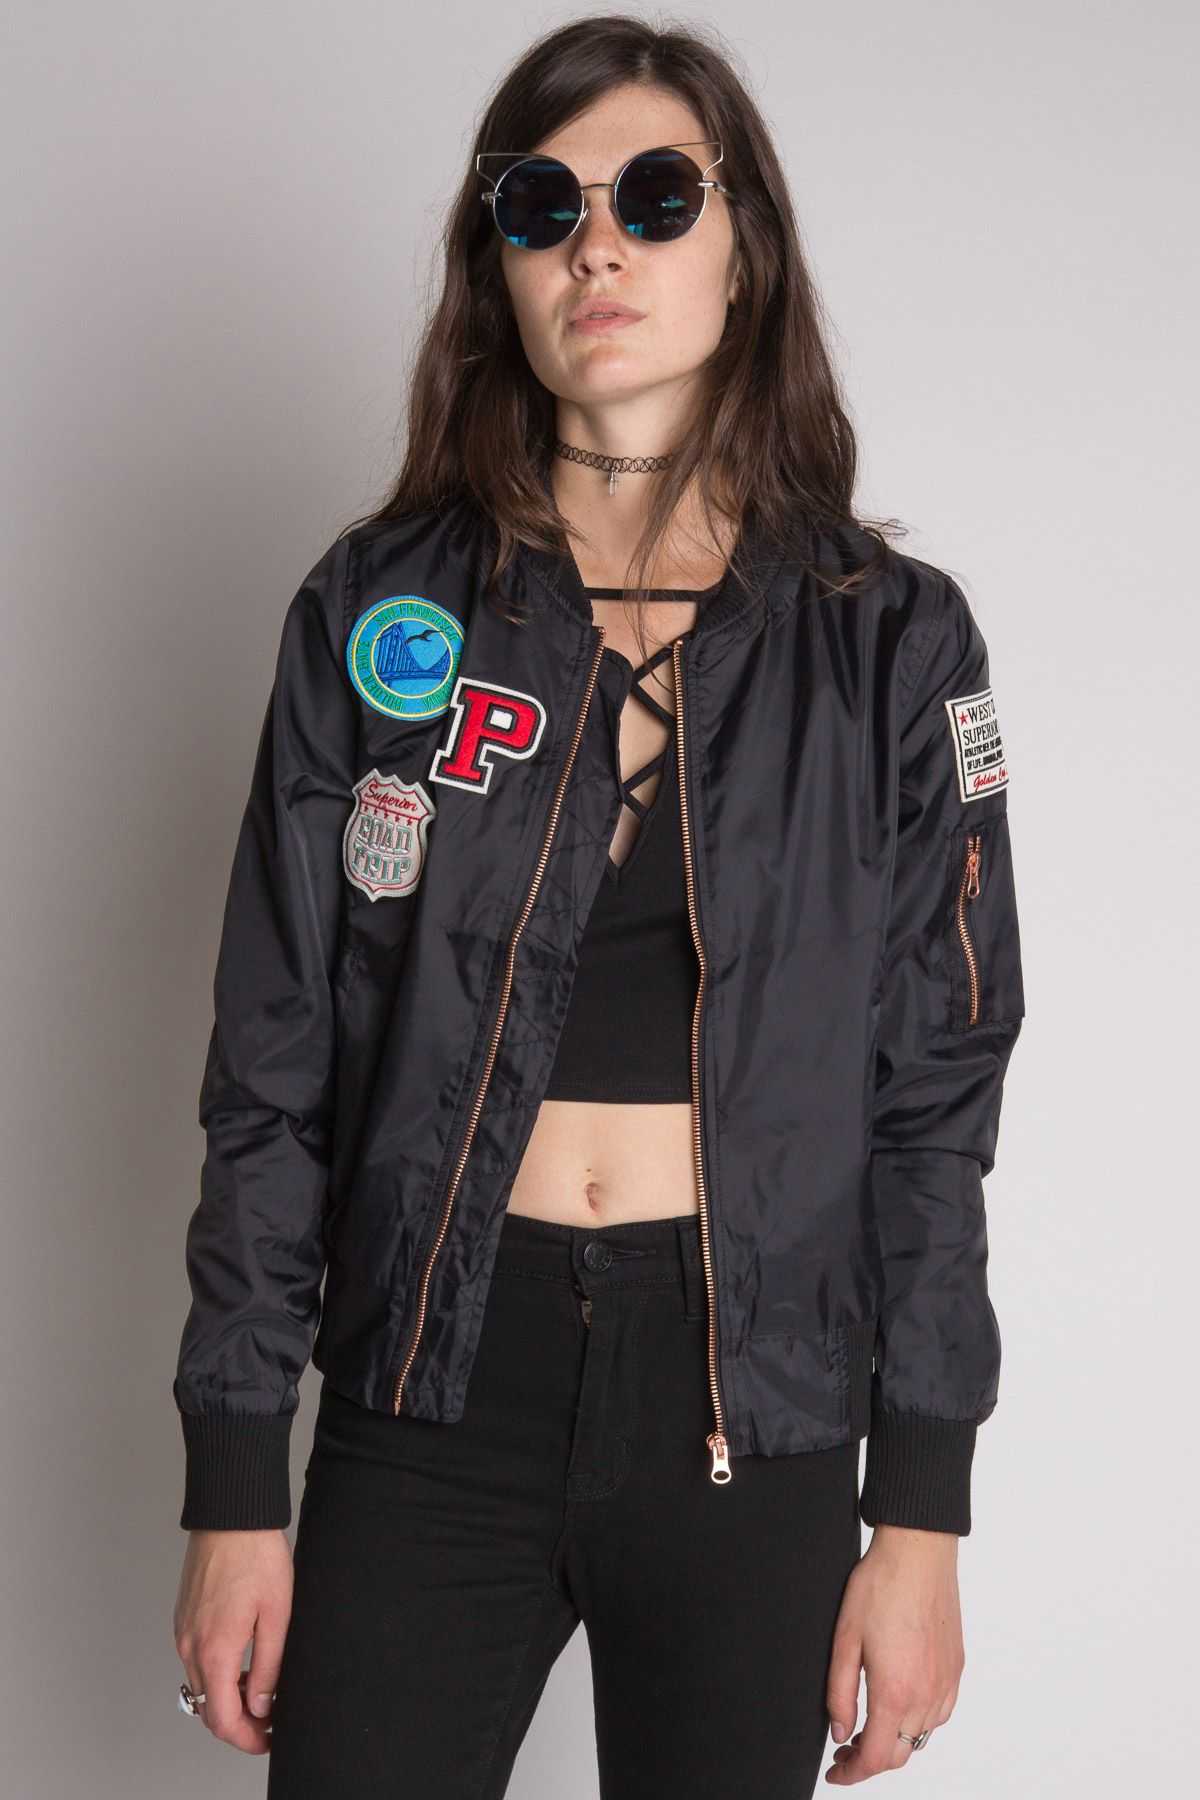 Black Patches Bomber Jacket - Show your fashion smarts with one of our new  bombers!